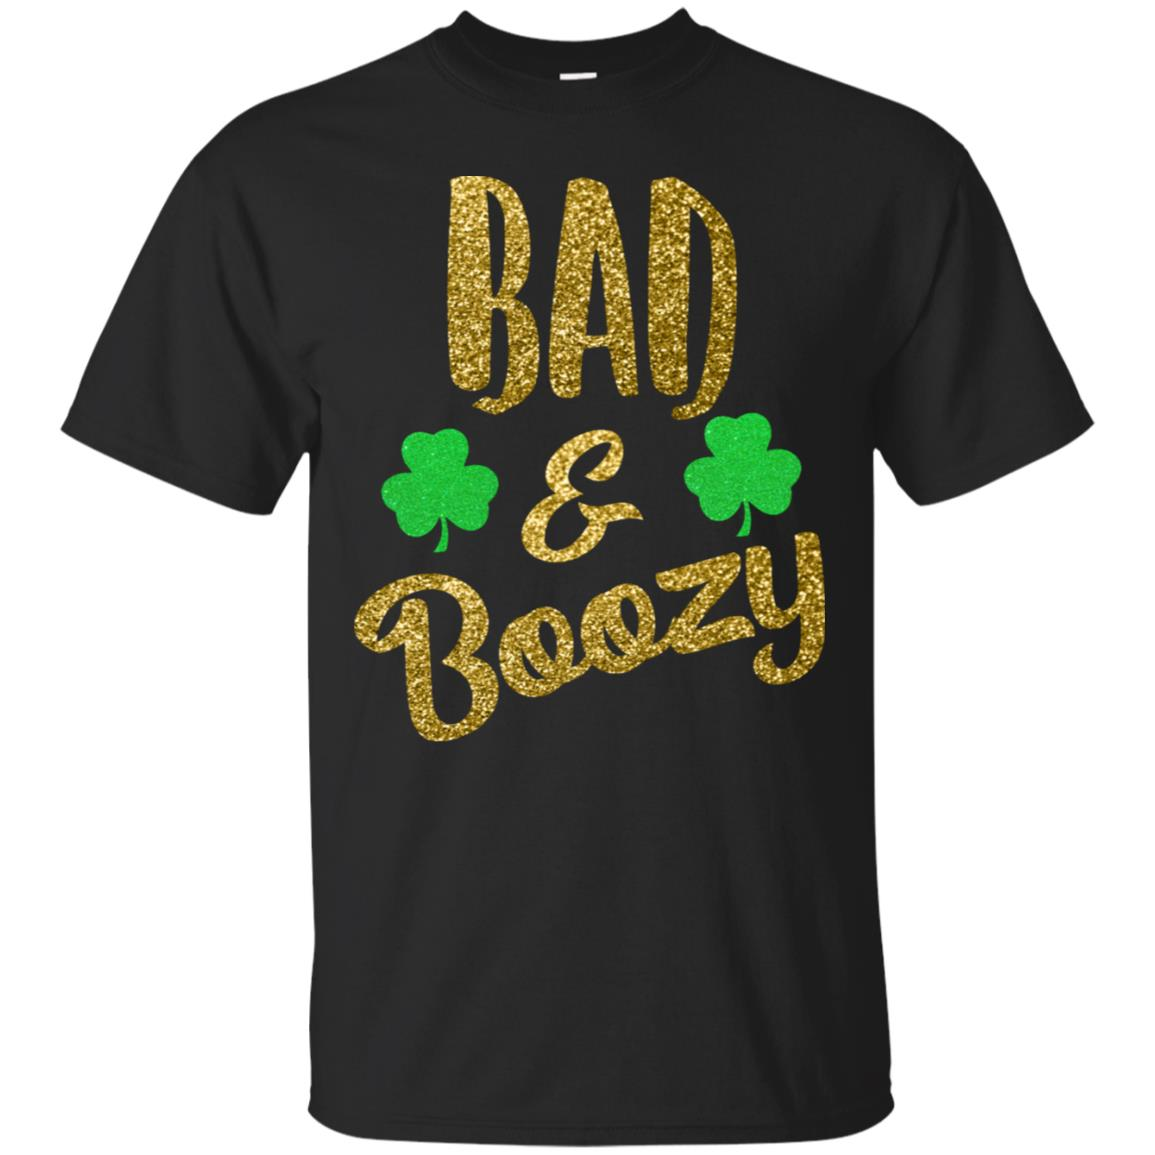 Bad and Boozy T-Shirt Funny Saint Patrick Day Drinking Gift 99promocode